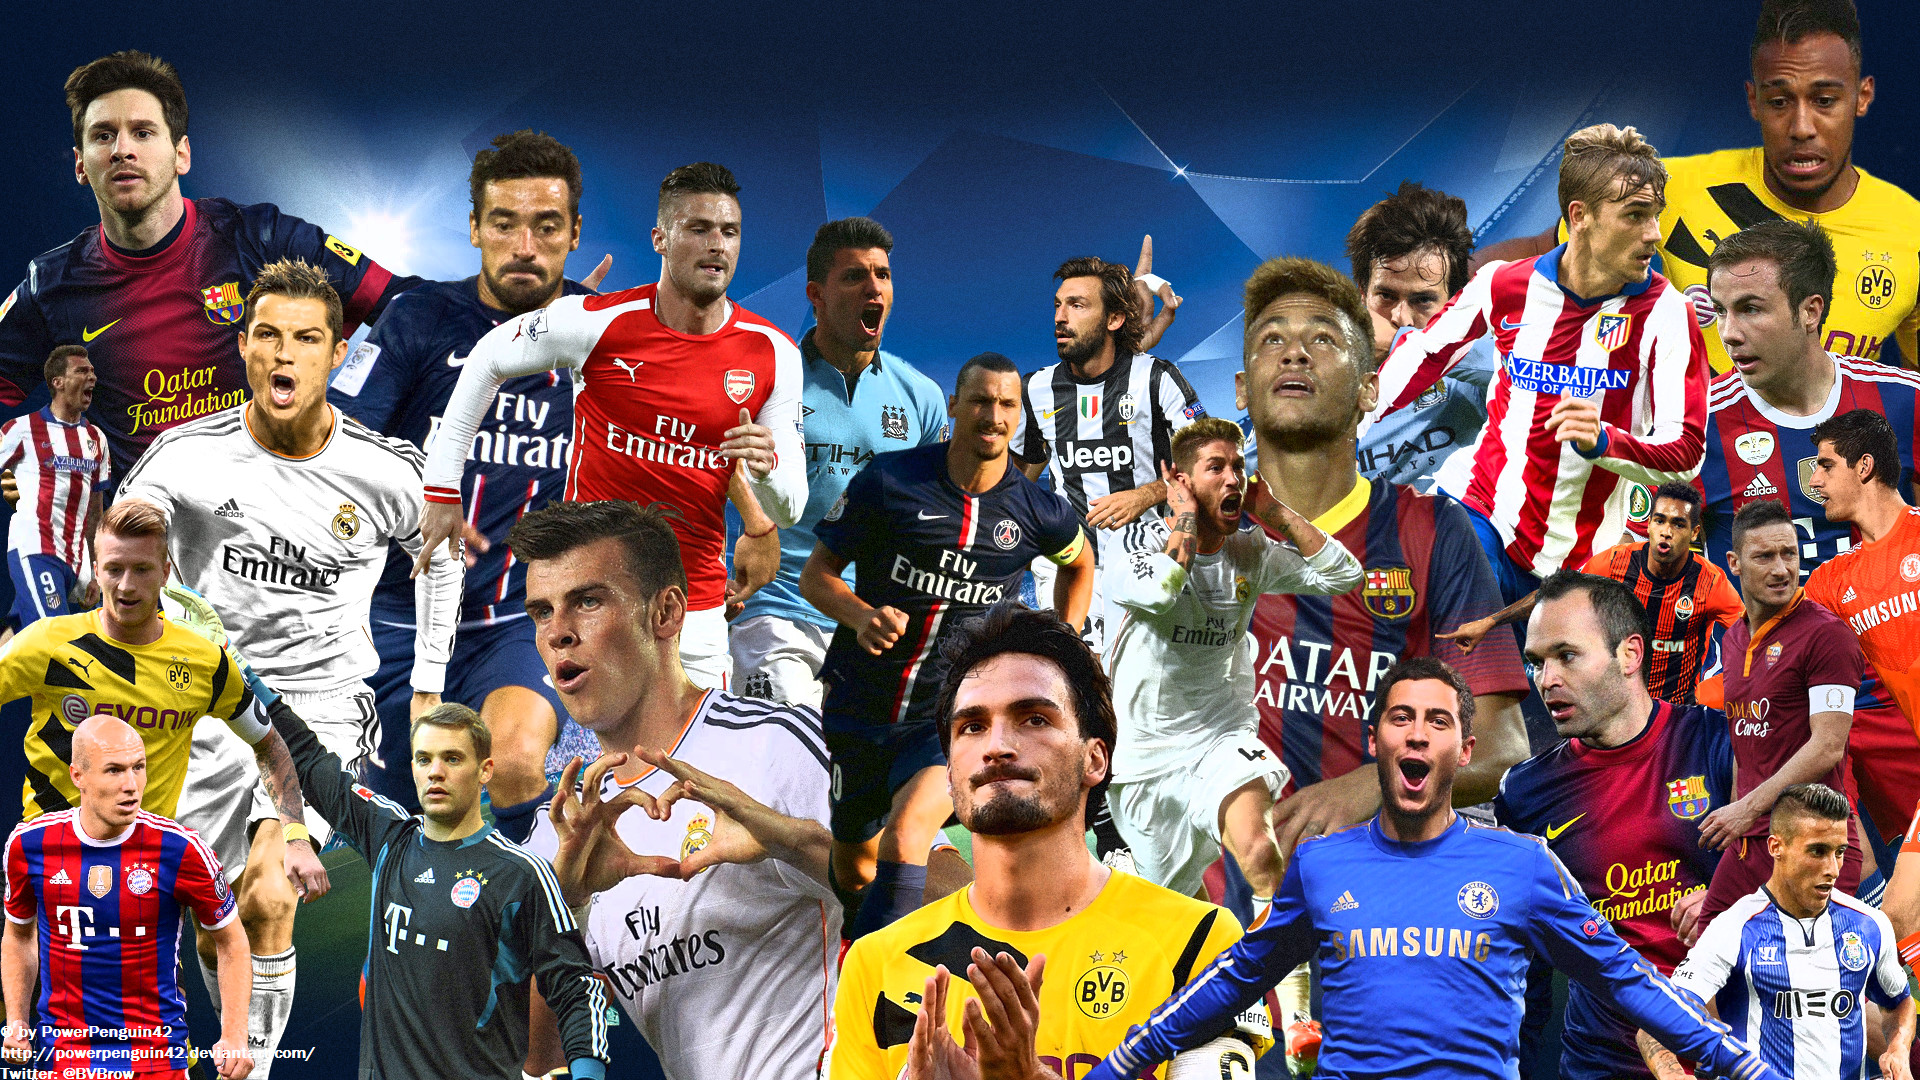 UEFA Champions League: Uefa Champions League Wallpaper (73+ Images